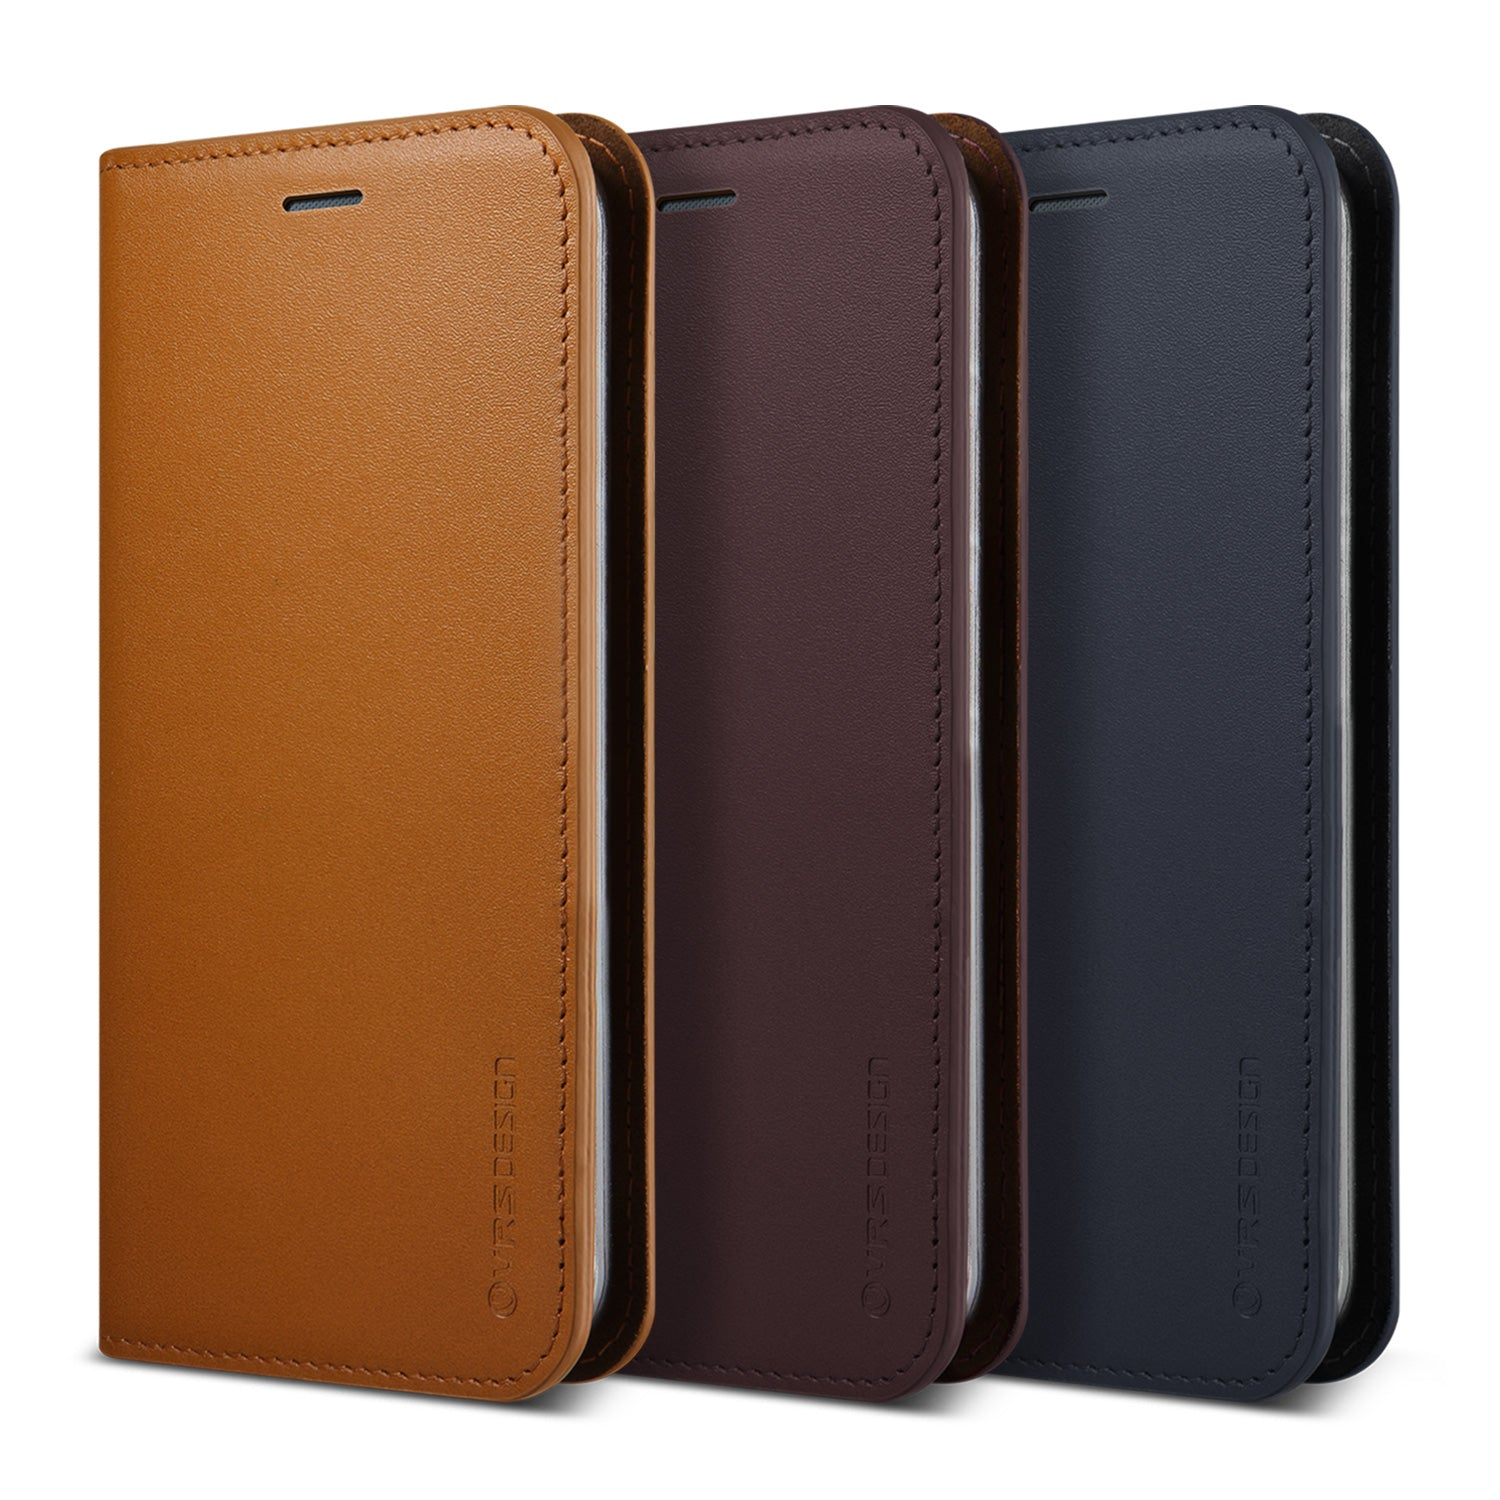 Genuine Leather Diary Galaxy S8 case from VRS Design